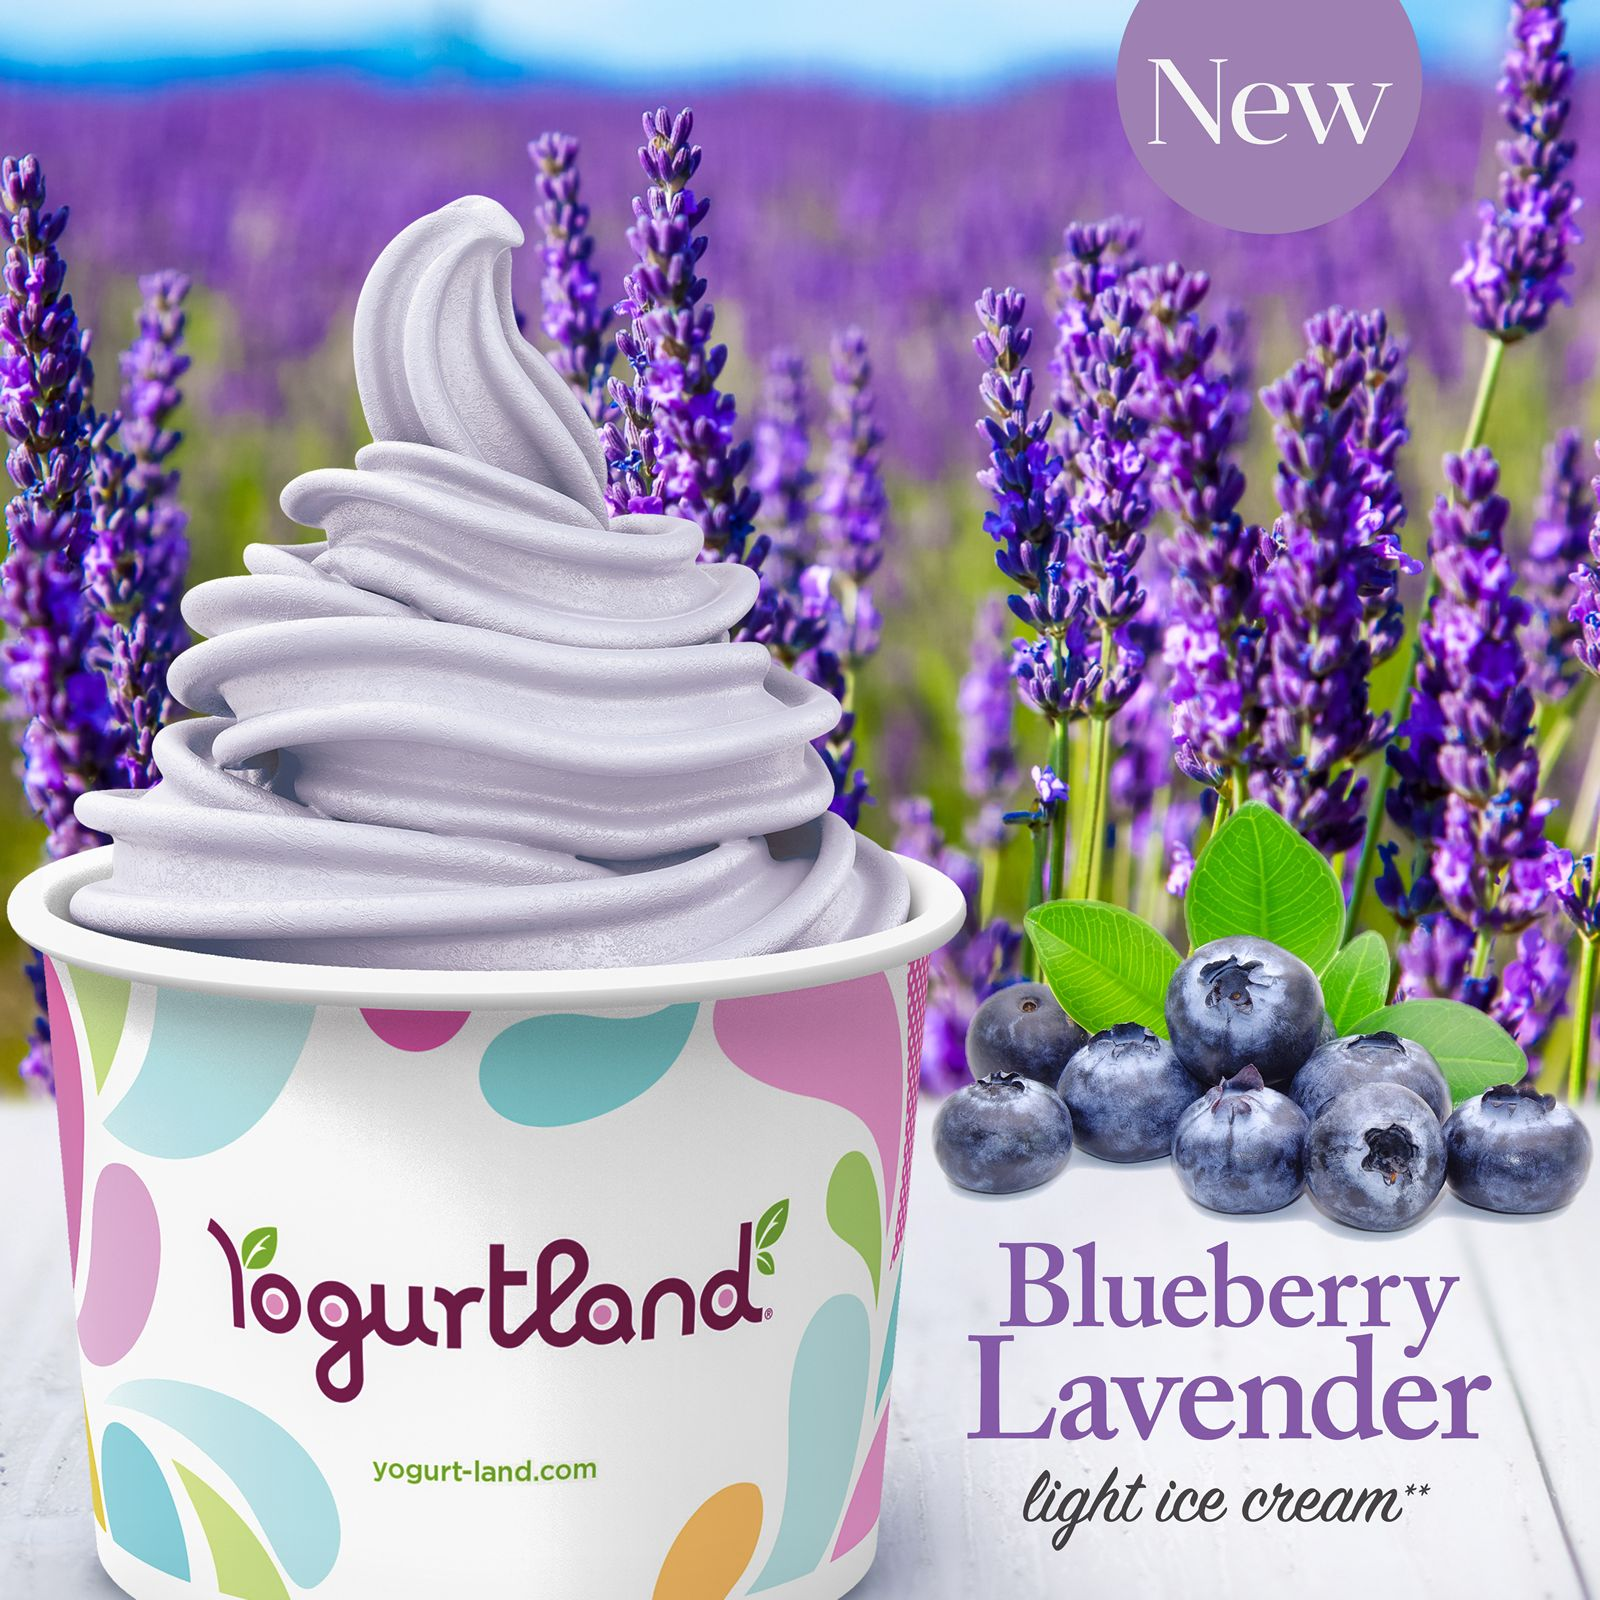 Sit Back, Relax and Enjoy Yogurtland's New Blueberry Lavender Light Ice Cream